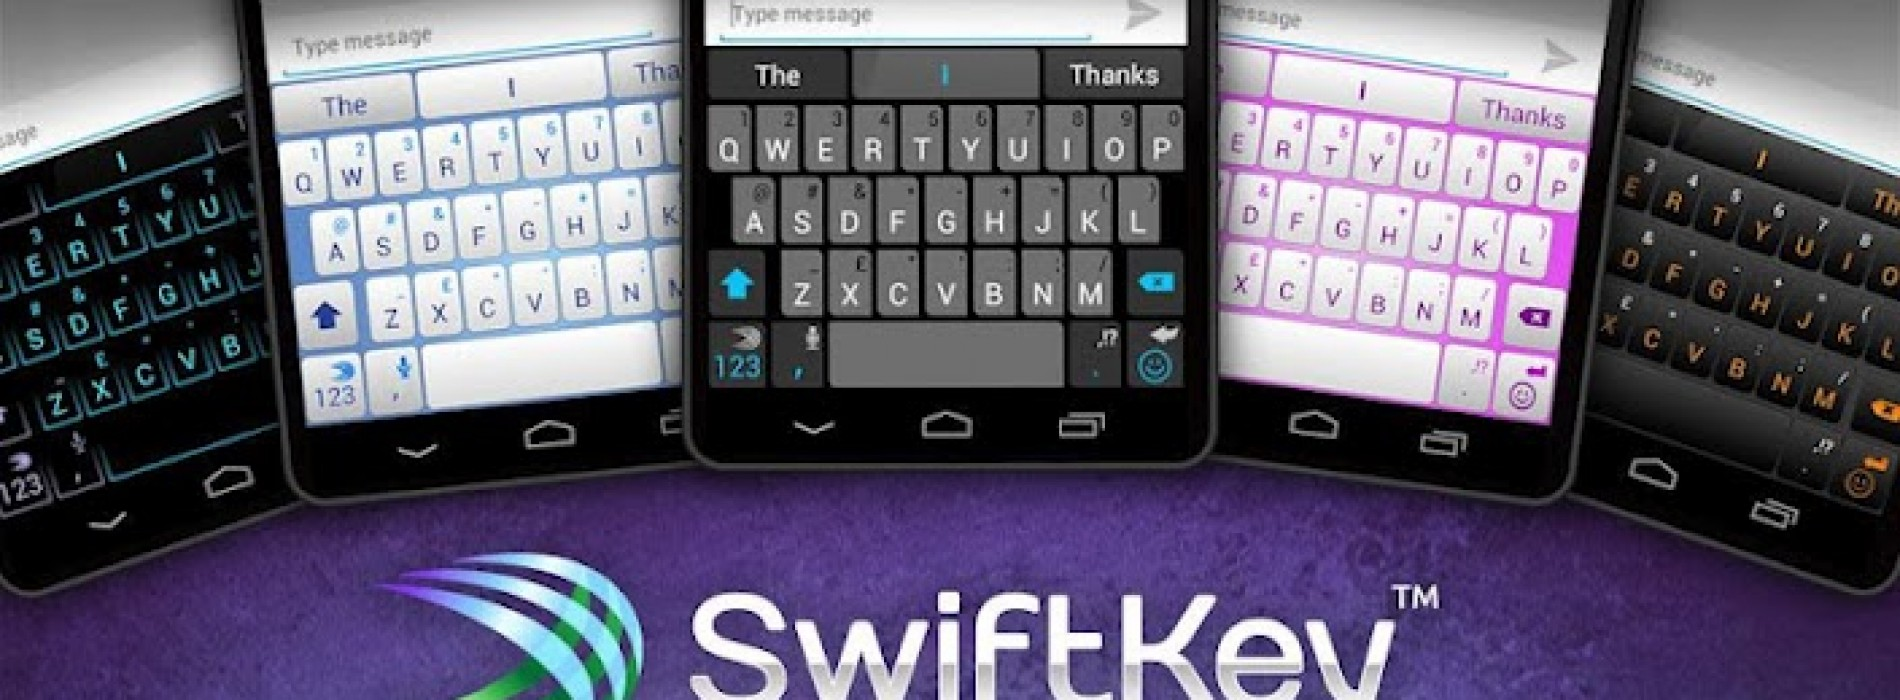 SwiftKey is now free, adds in-app premium features